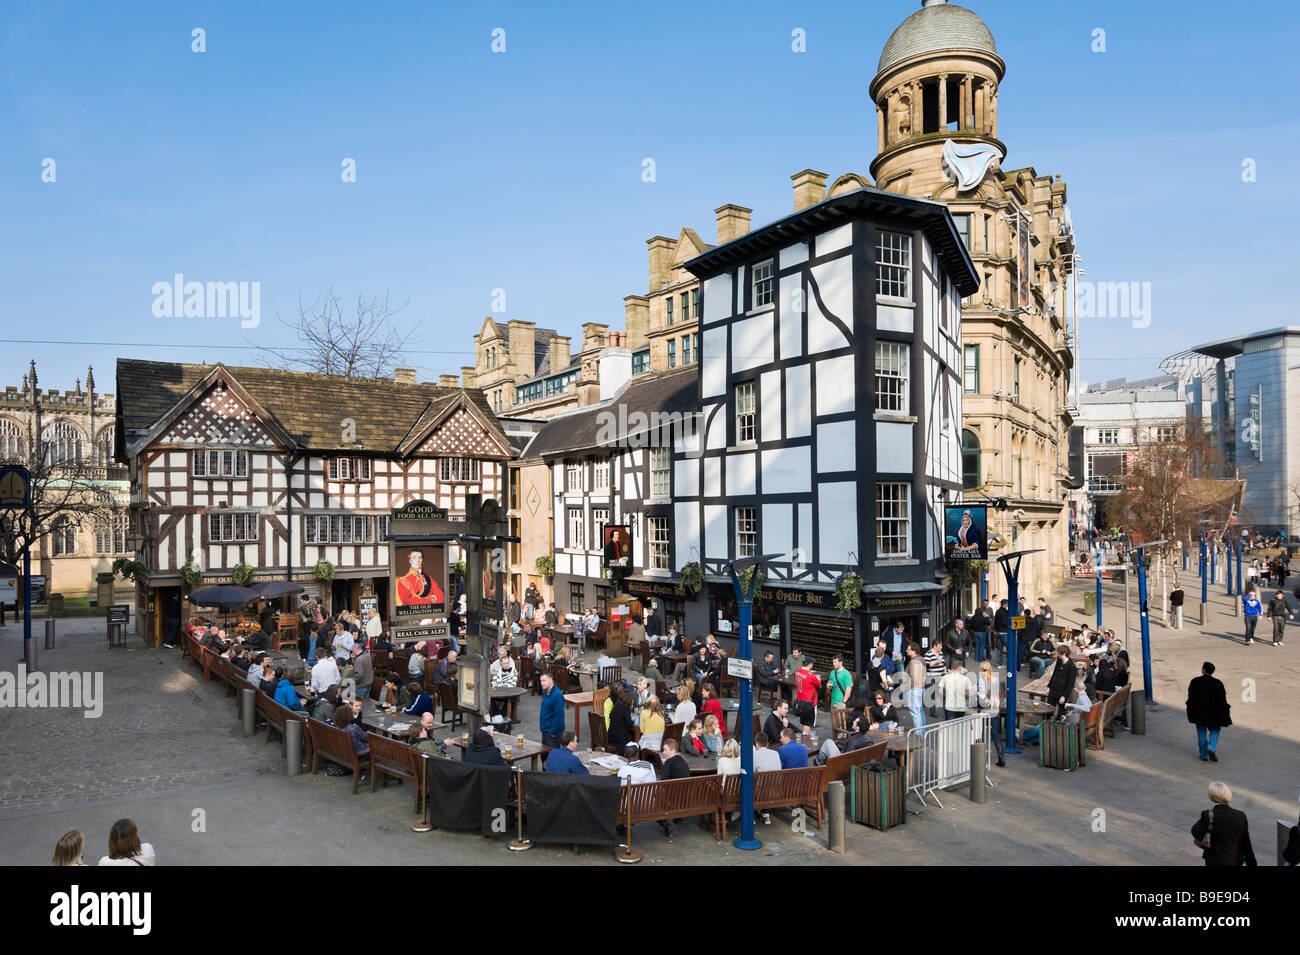 The Old Wellington Inn and Sinclair's Oyster Bar, Cathedral Gates, Exchange Square, Manchester, England - Stock Image